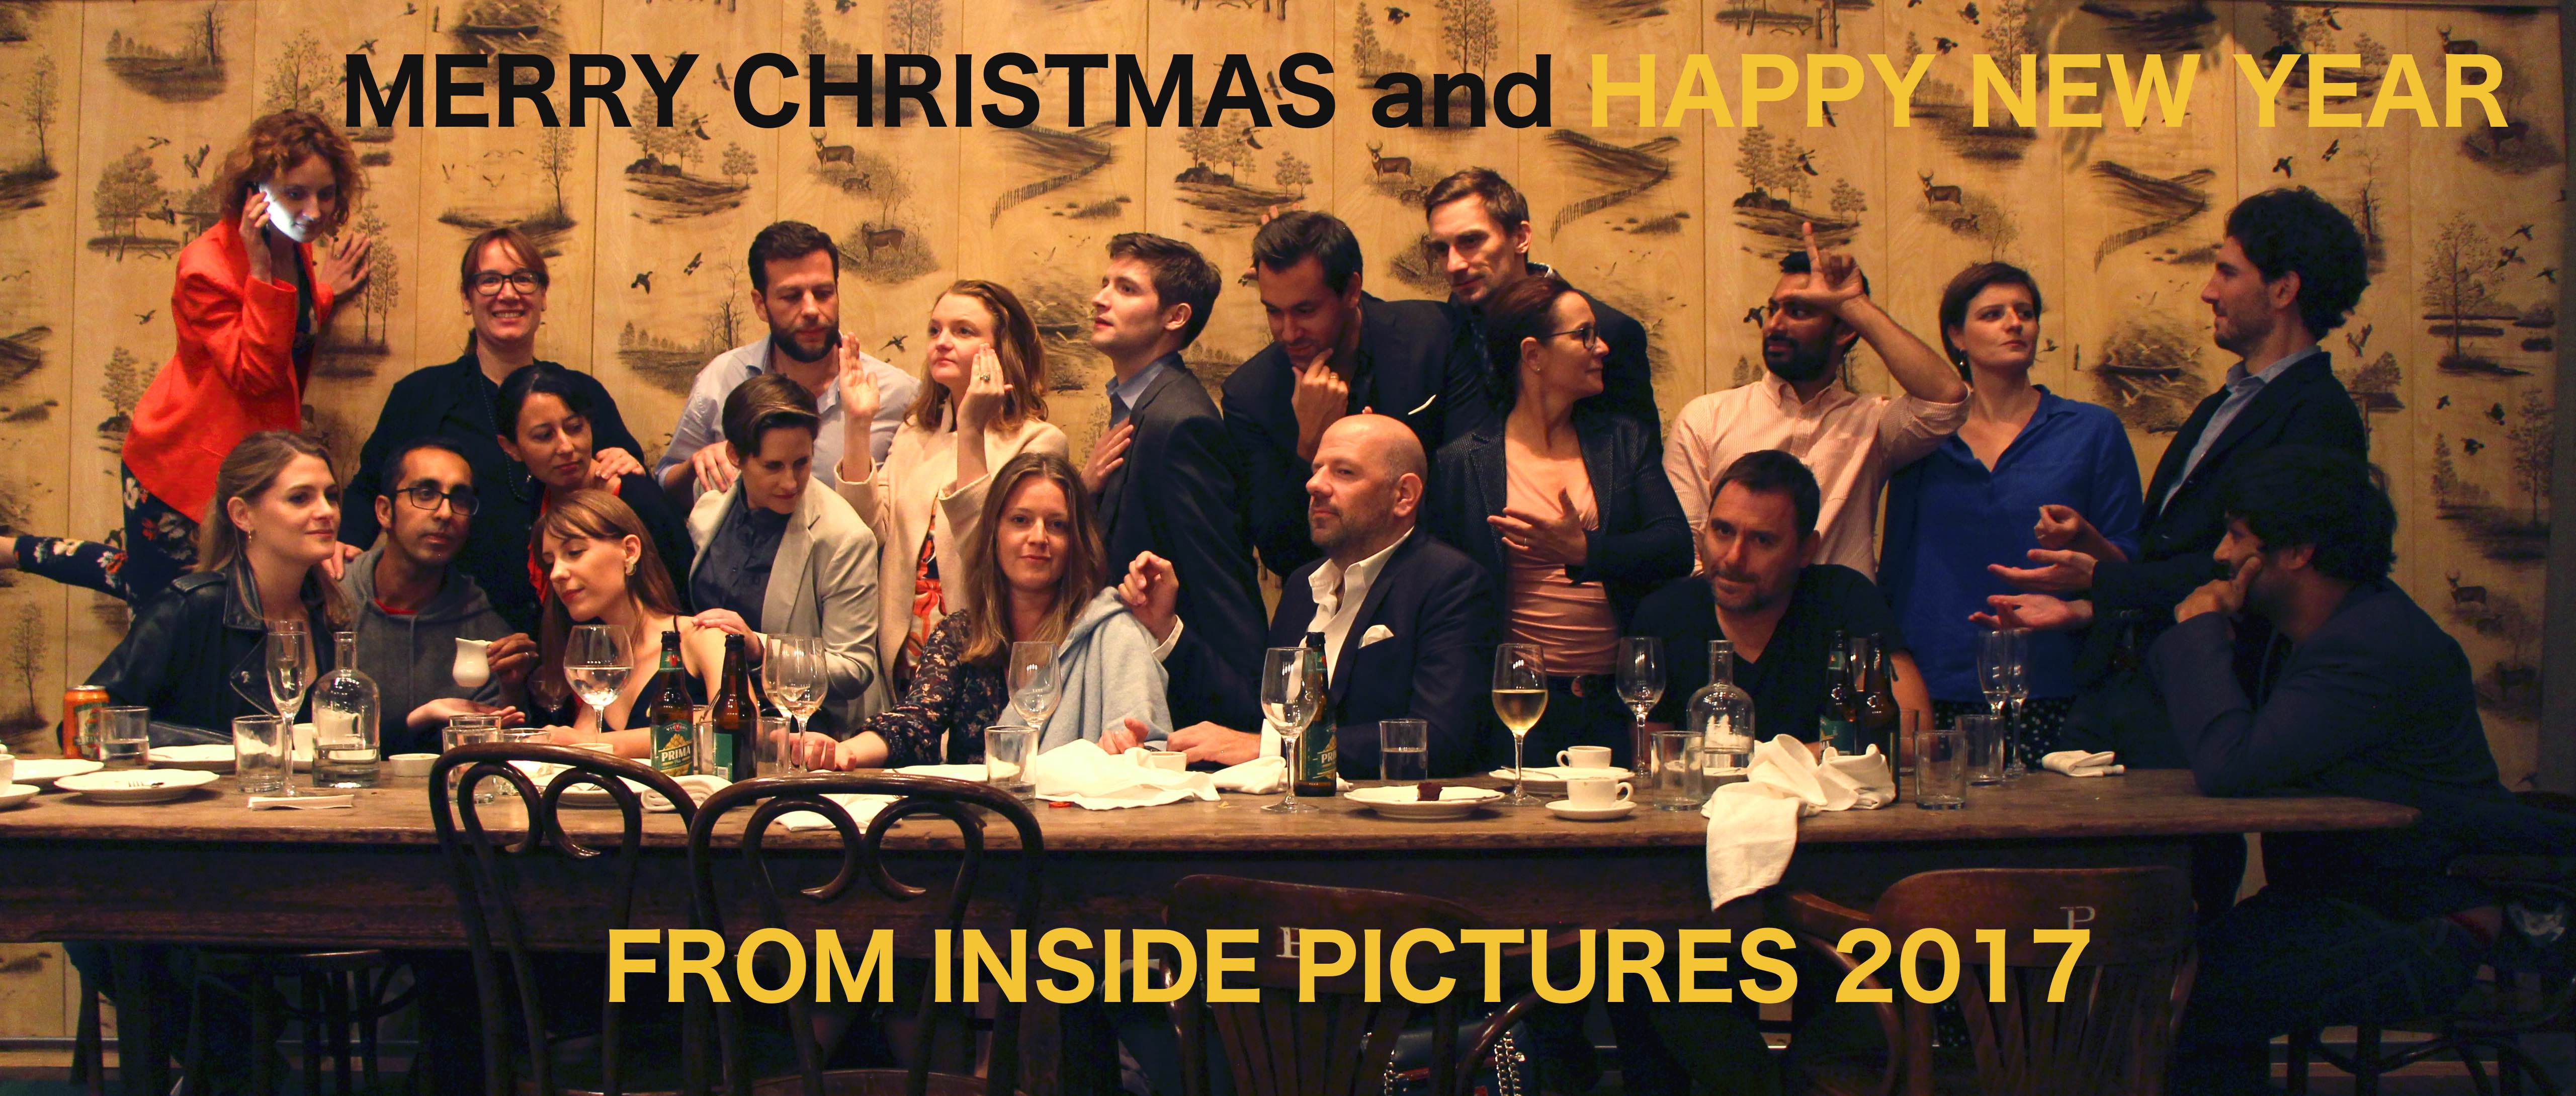 The Last Supper CHRISTMAS_LOW RES